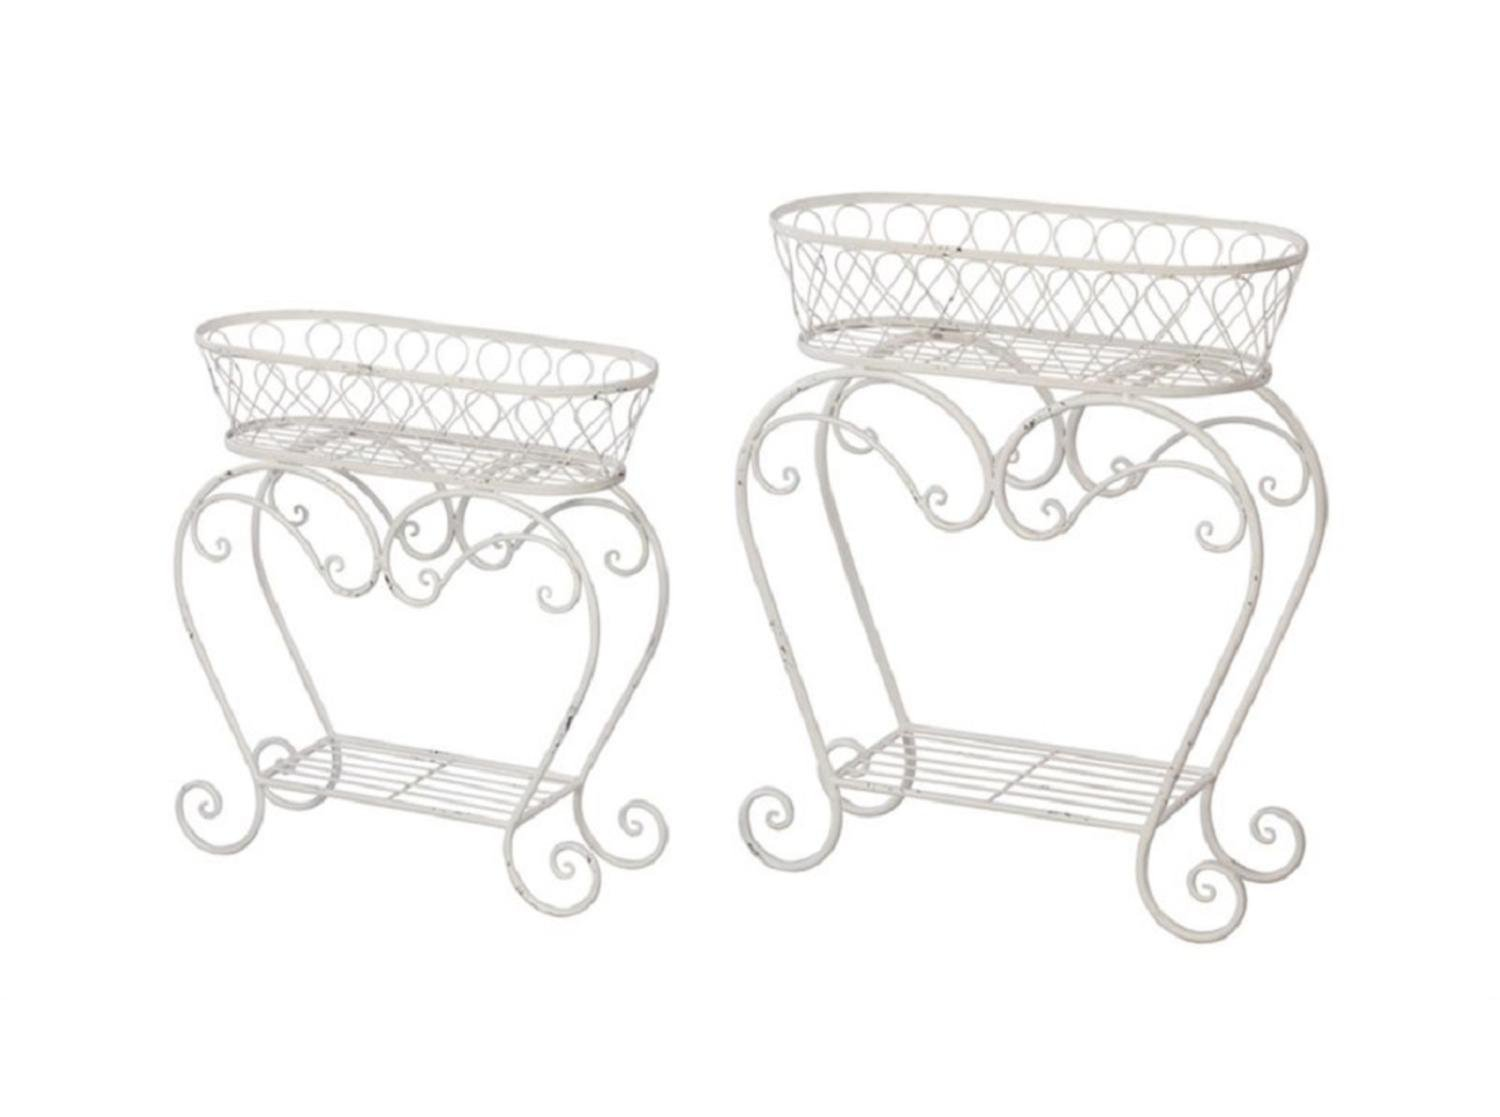 "Set of 2 Enchanting Distressed Look Oblong Decorative Plant Stand 30"" by Melrose"